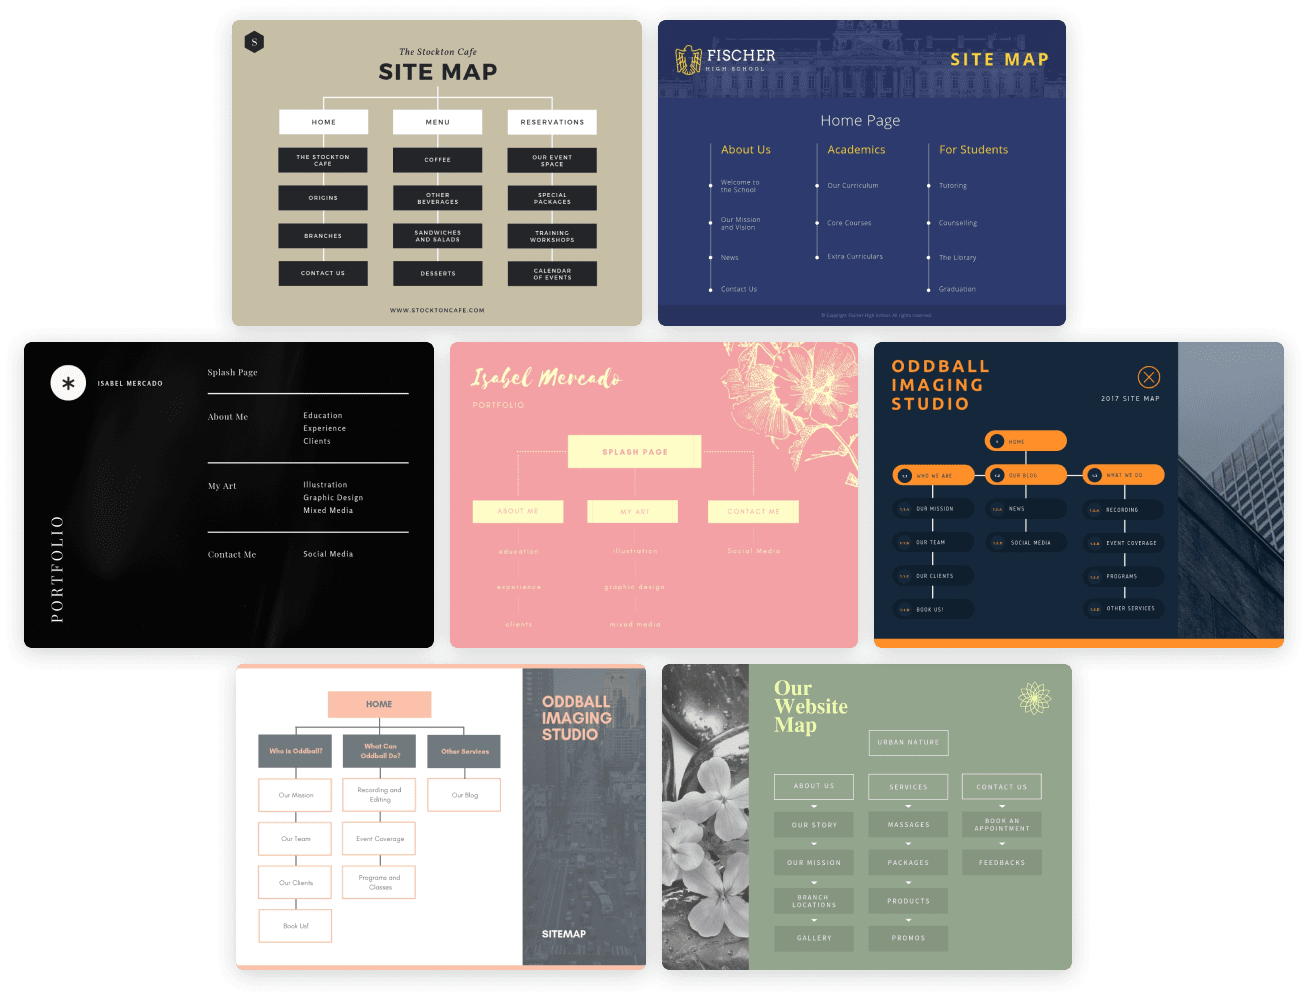 Site Map Template Free from static-cse.canva.com